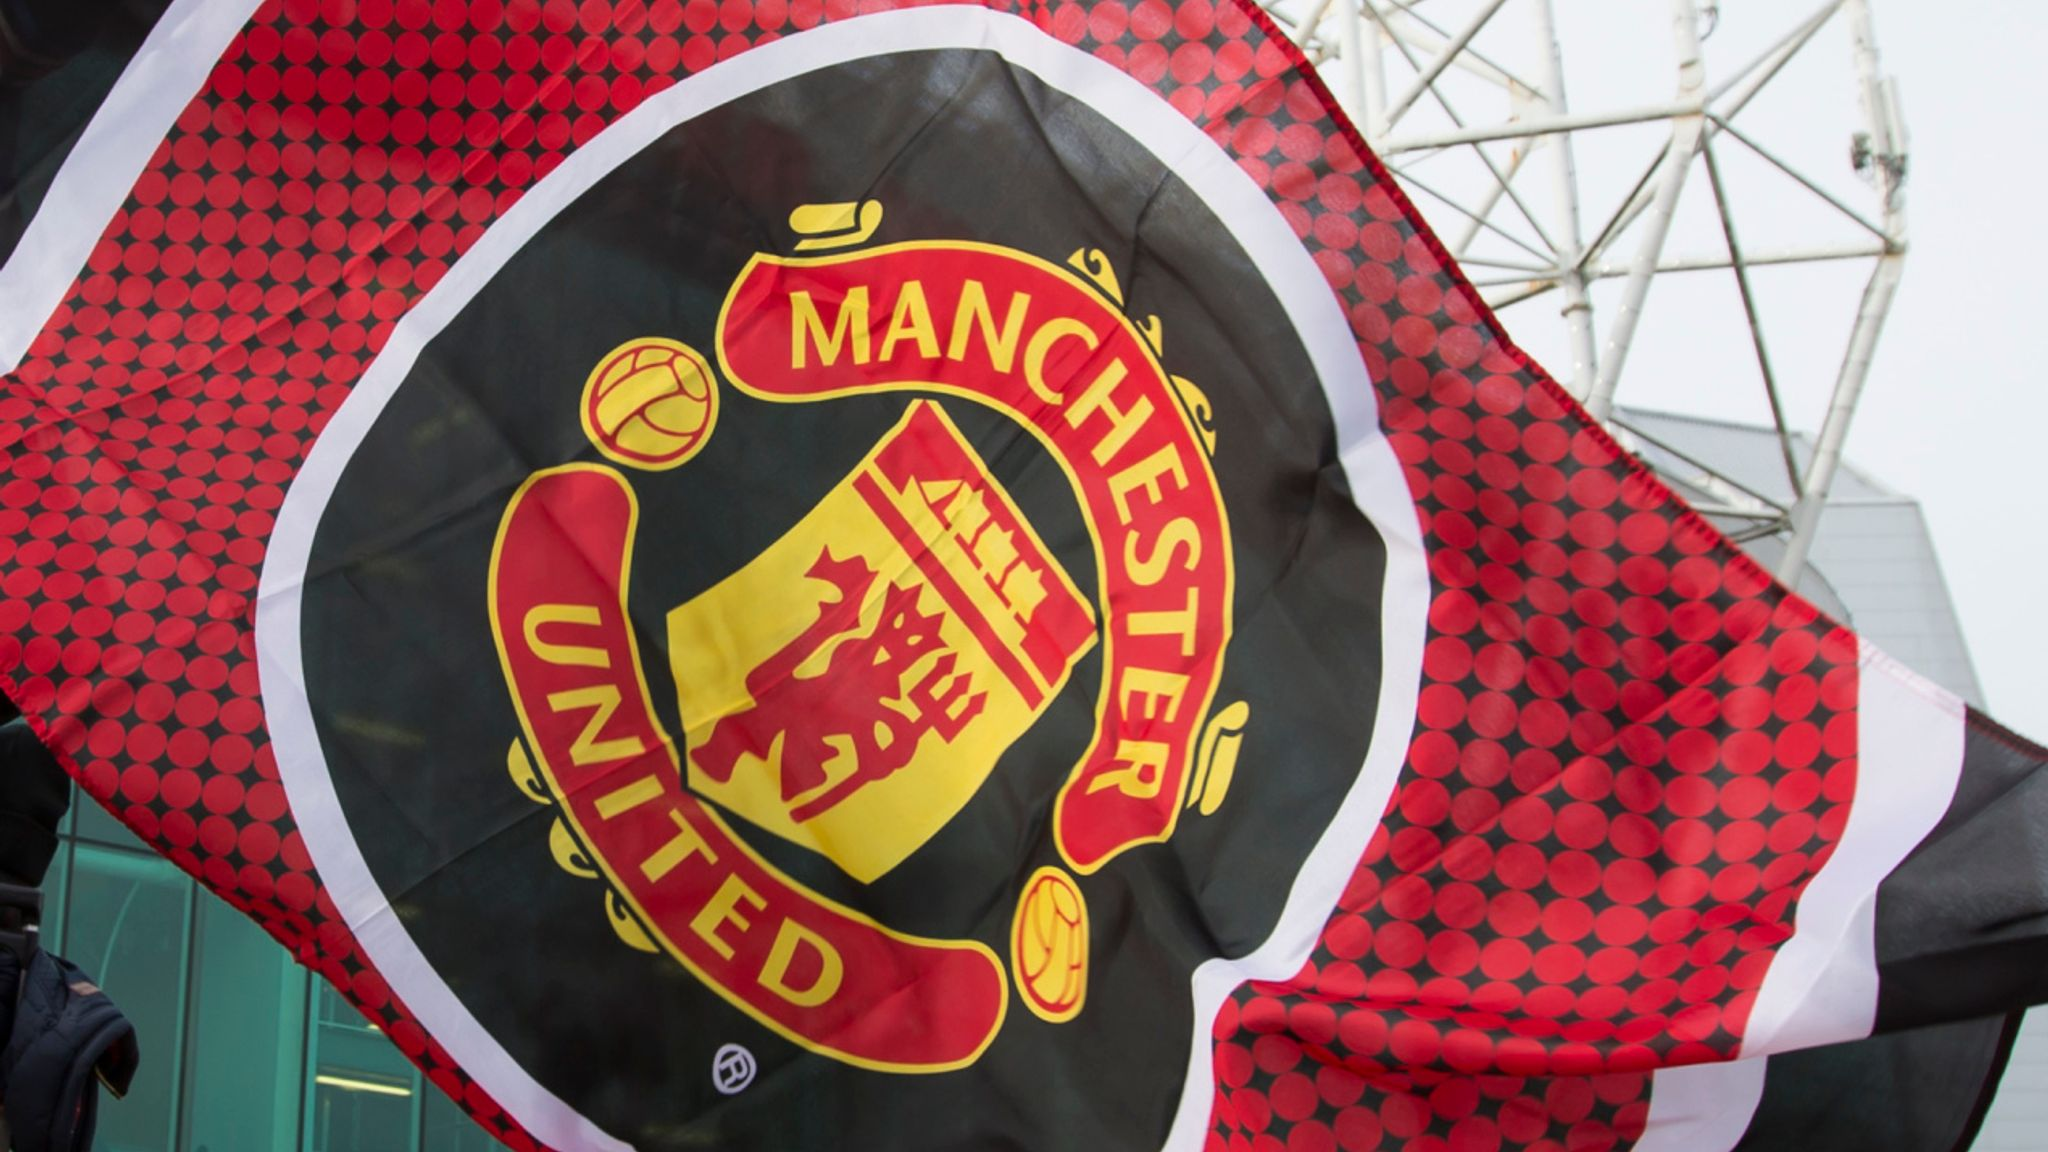 Man U Champions League group 2021/22 - how to watch Champions League?